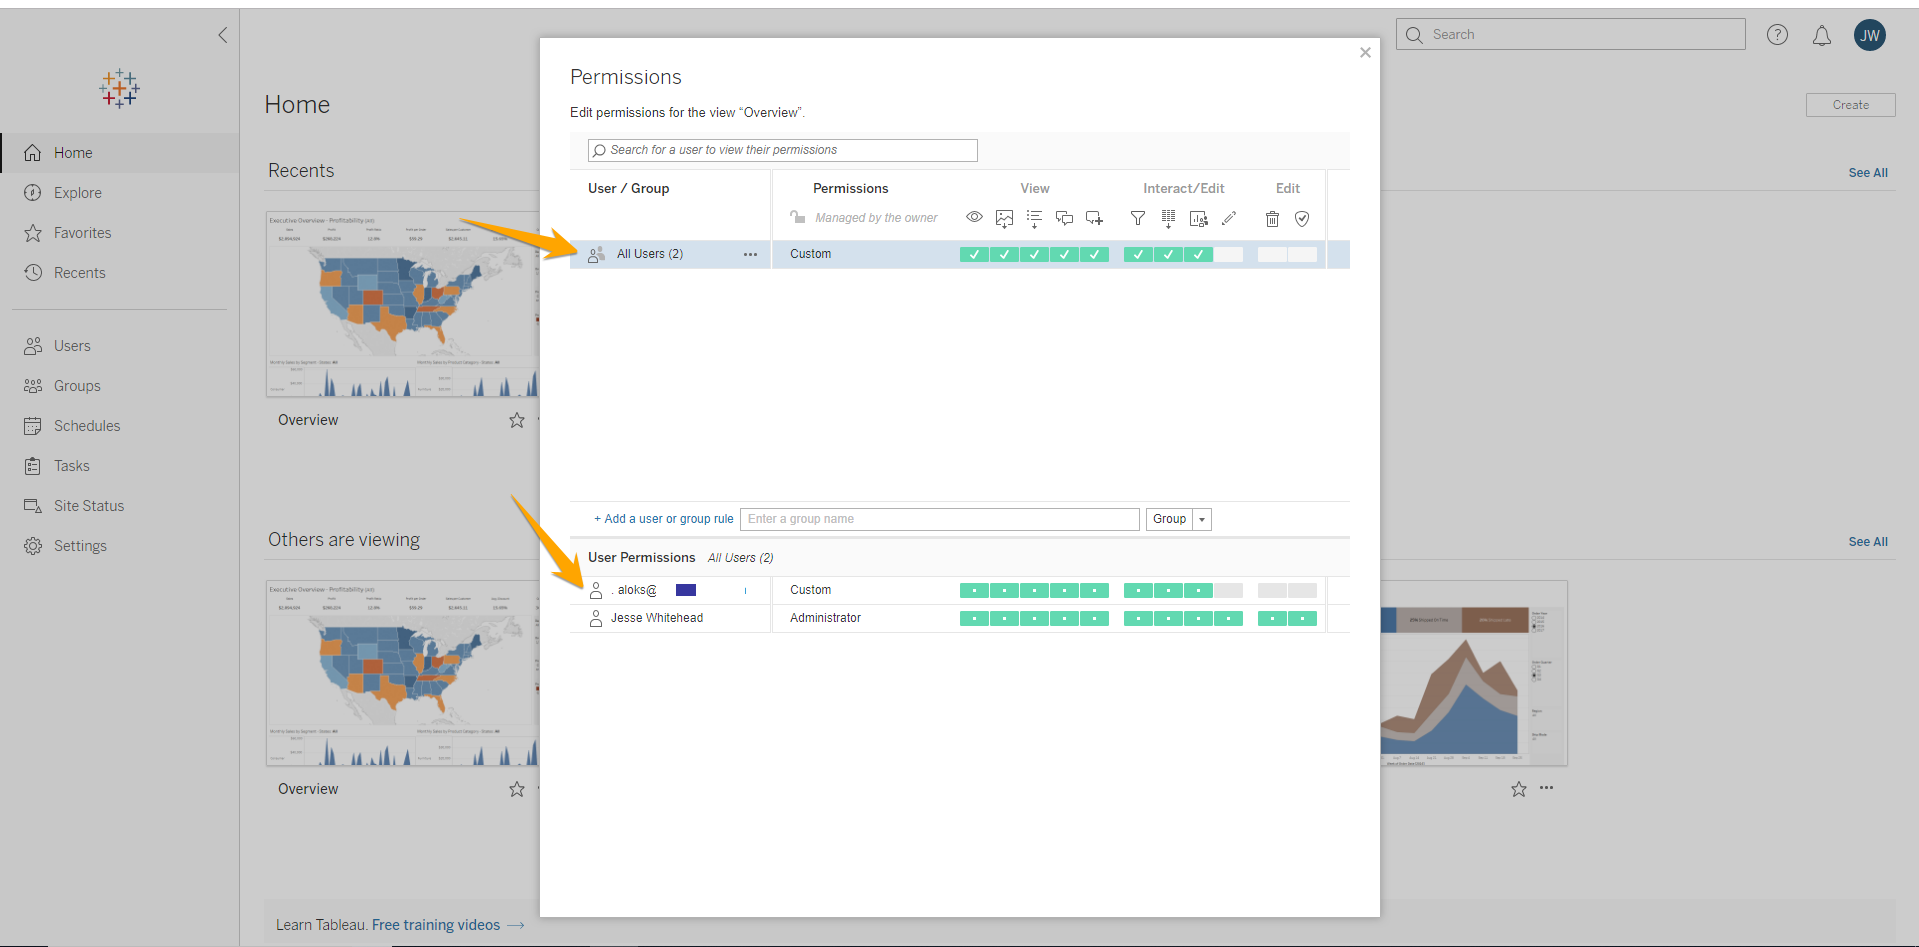 How to Integrate Mangoapps with Tableau? – MangoApps Help